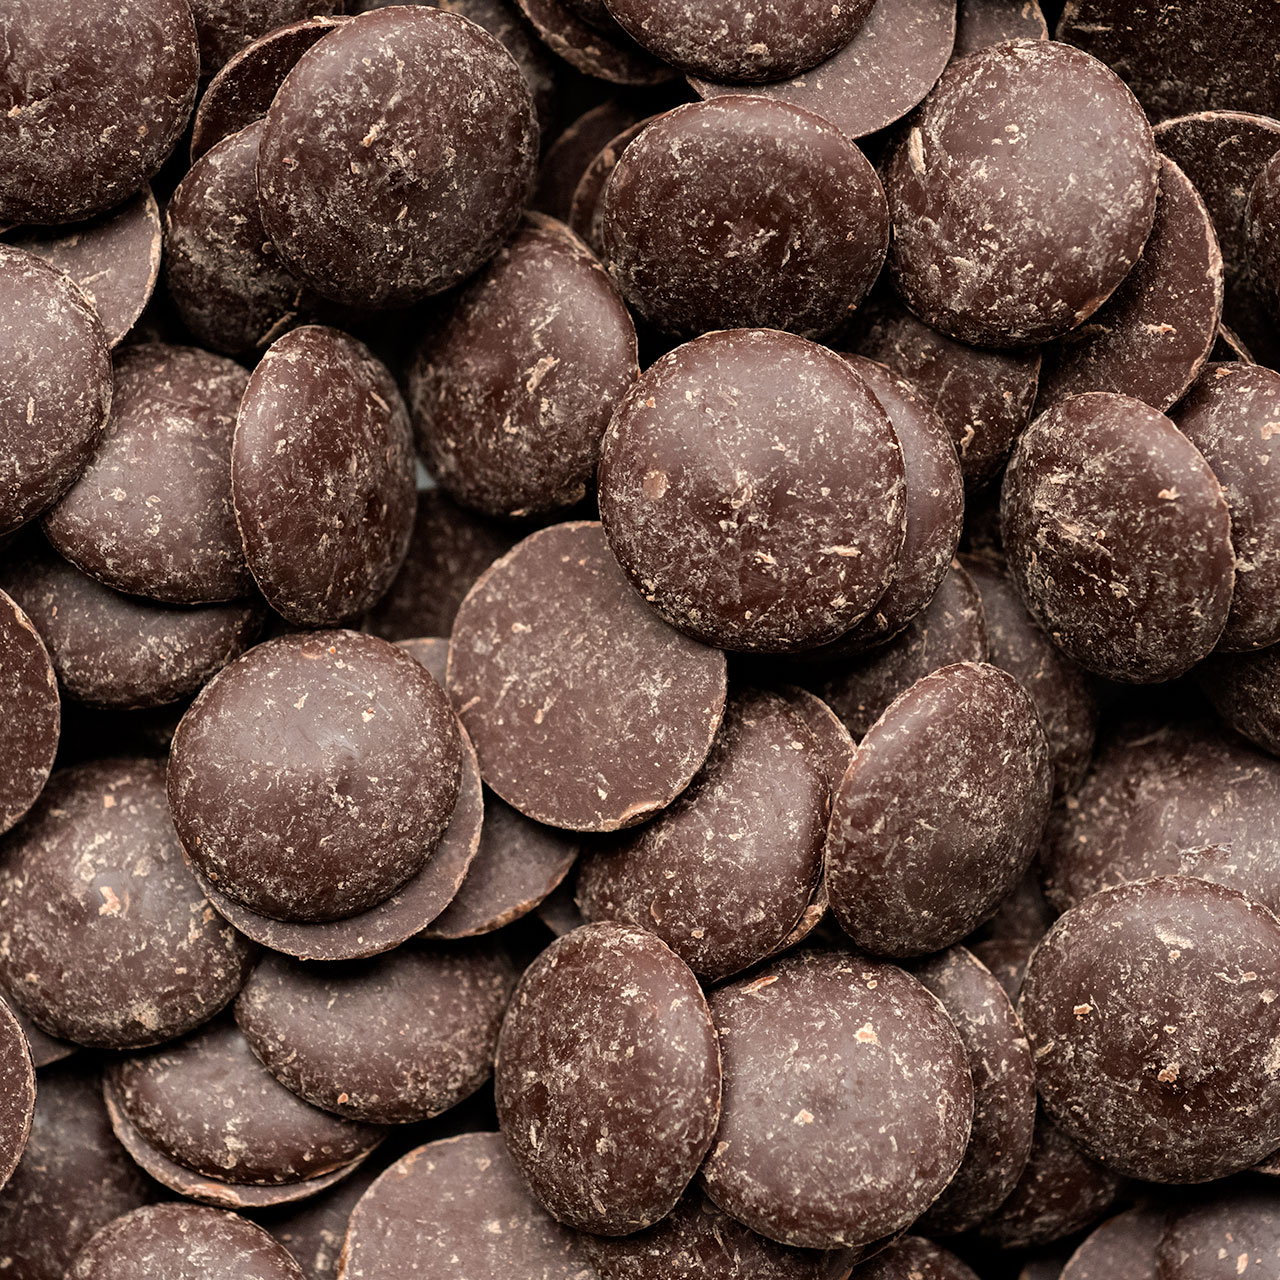 Agostoni Organic 60% San Primo Bittersweet Couverture Chocolate - 1 pound